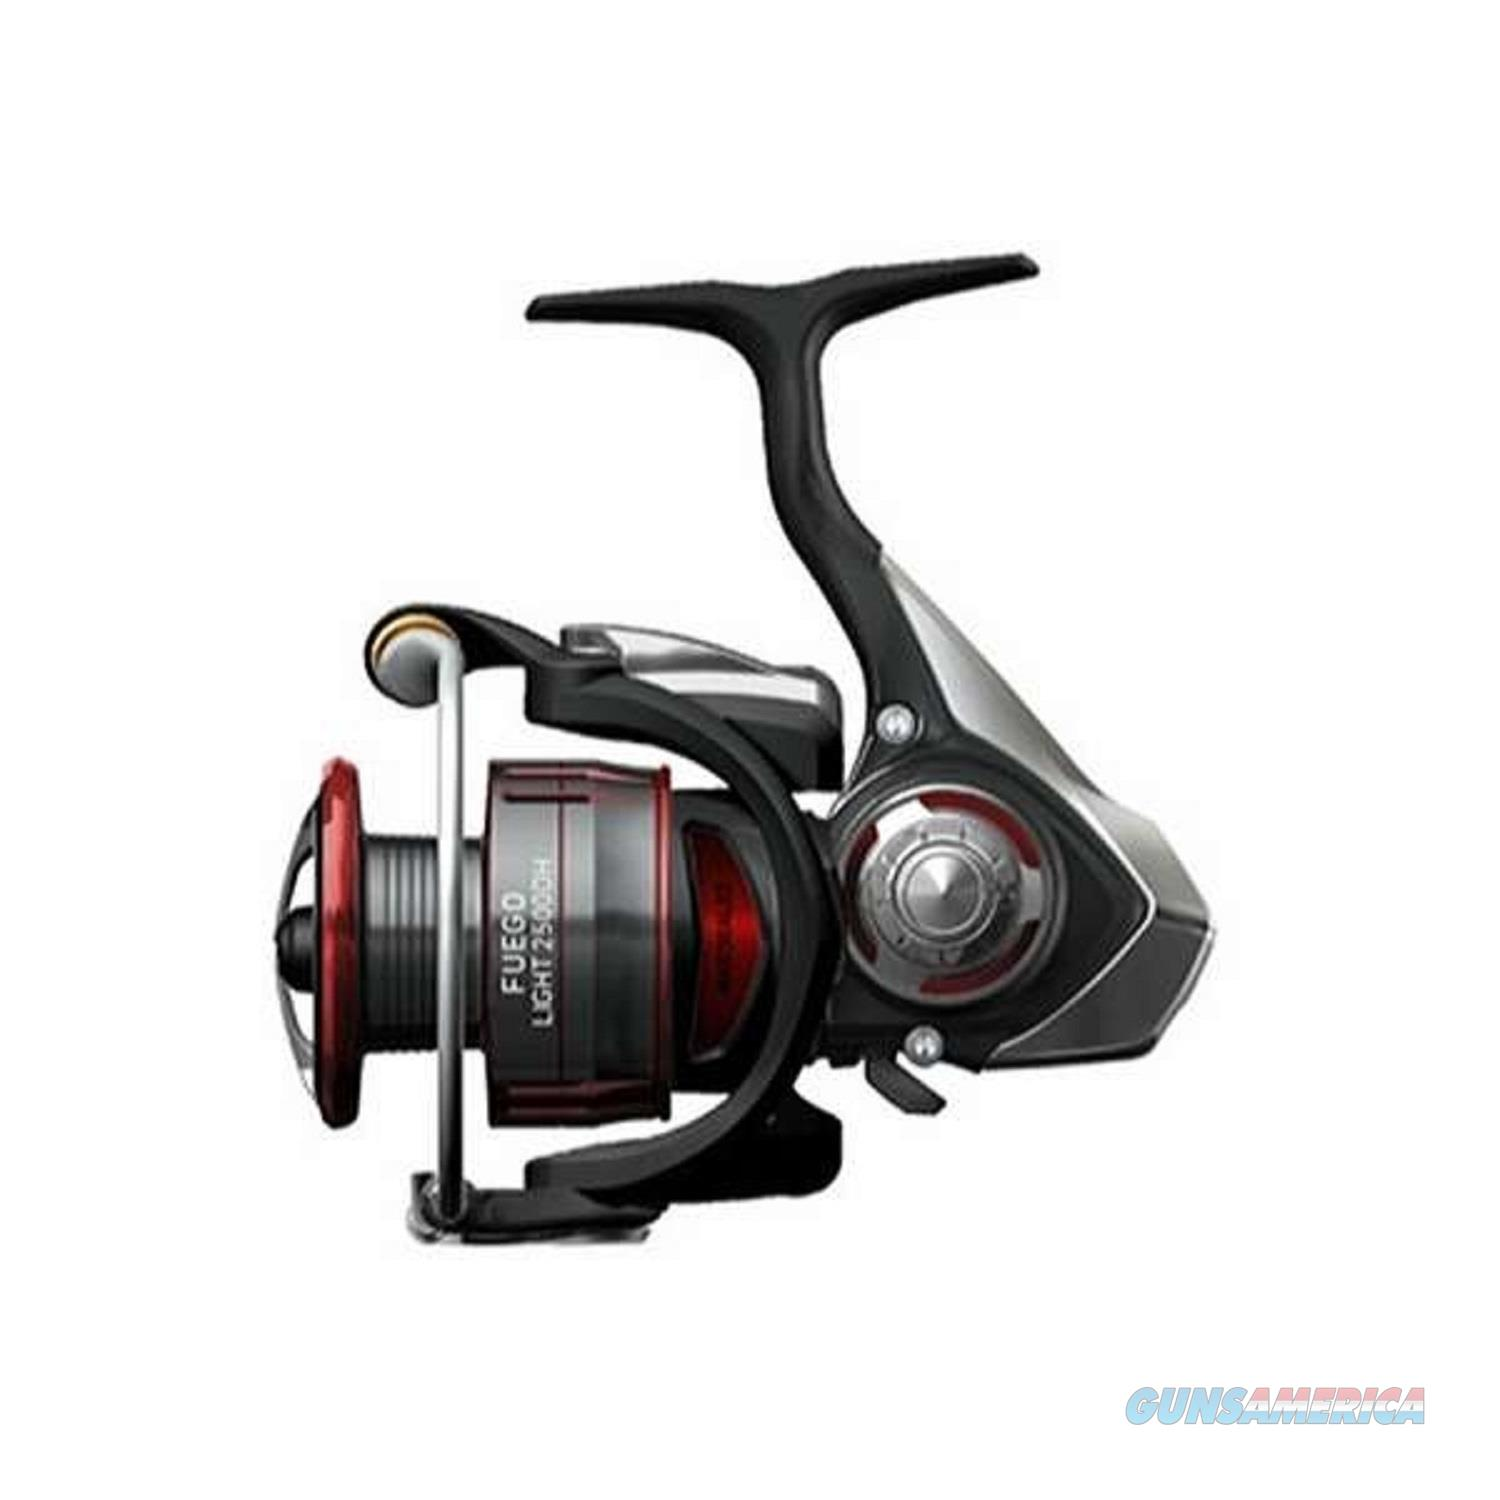 Daiwa Fuego Lt Spinning Reel 6+1 5.3:1 Fglt2500d FGLT2500D  Non-Guns > Fishing/Spearfishing